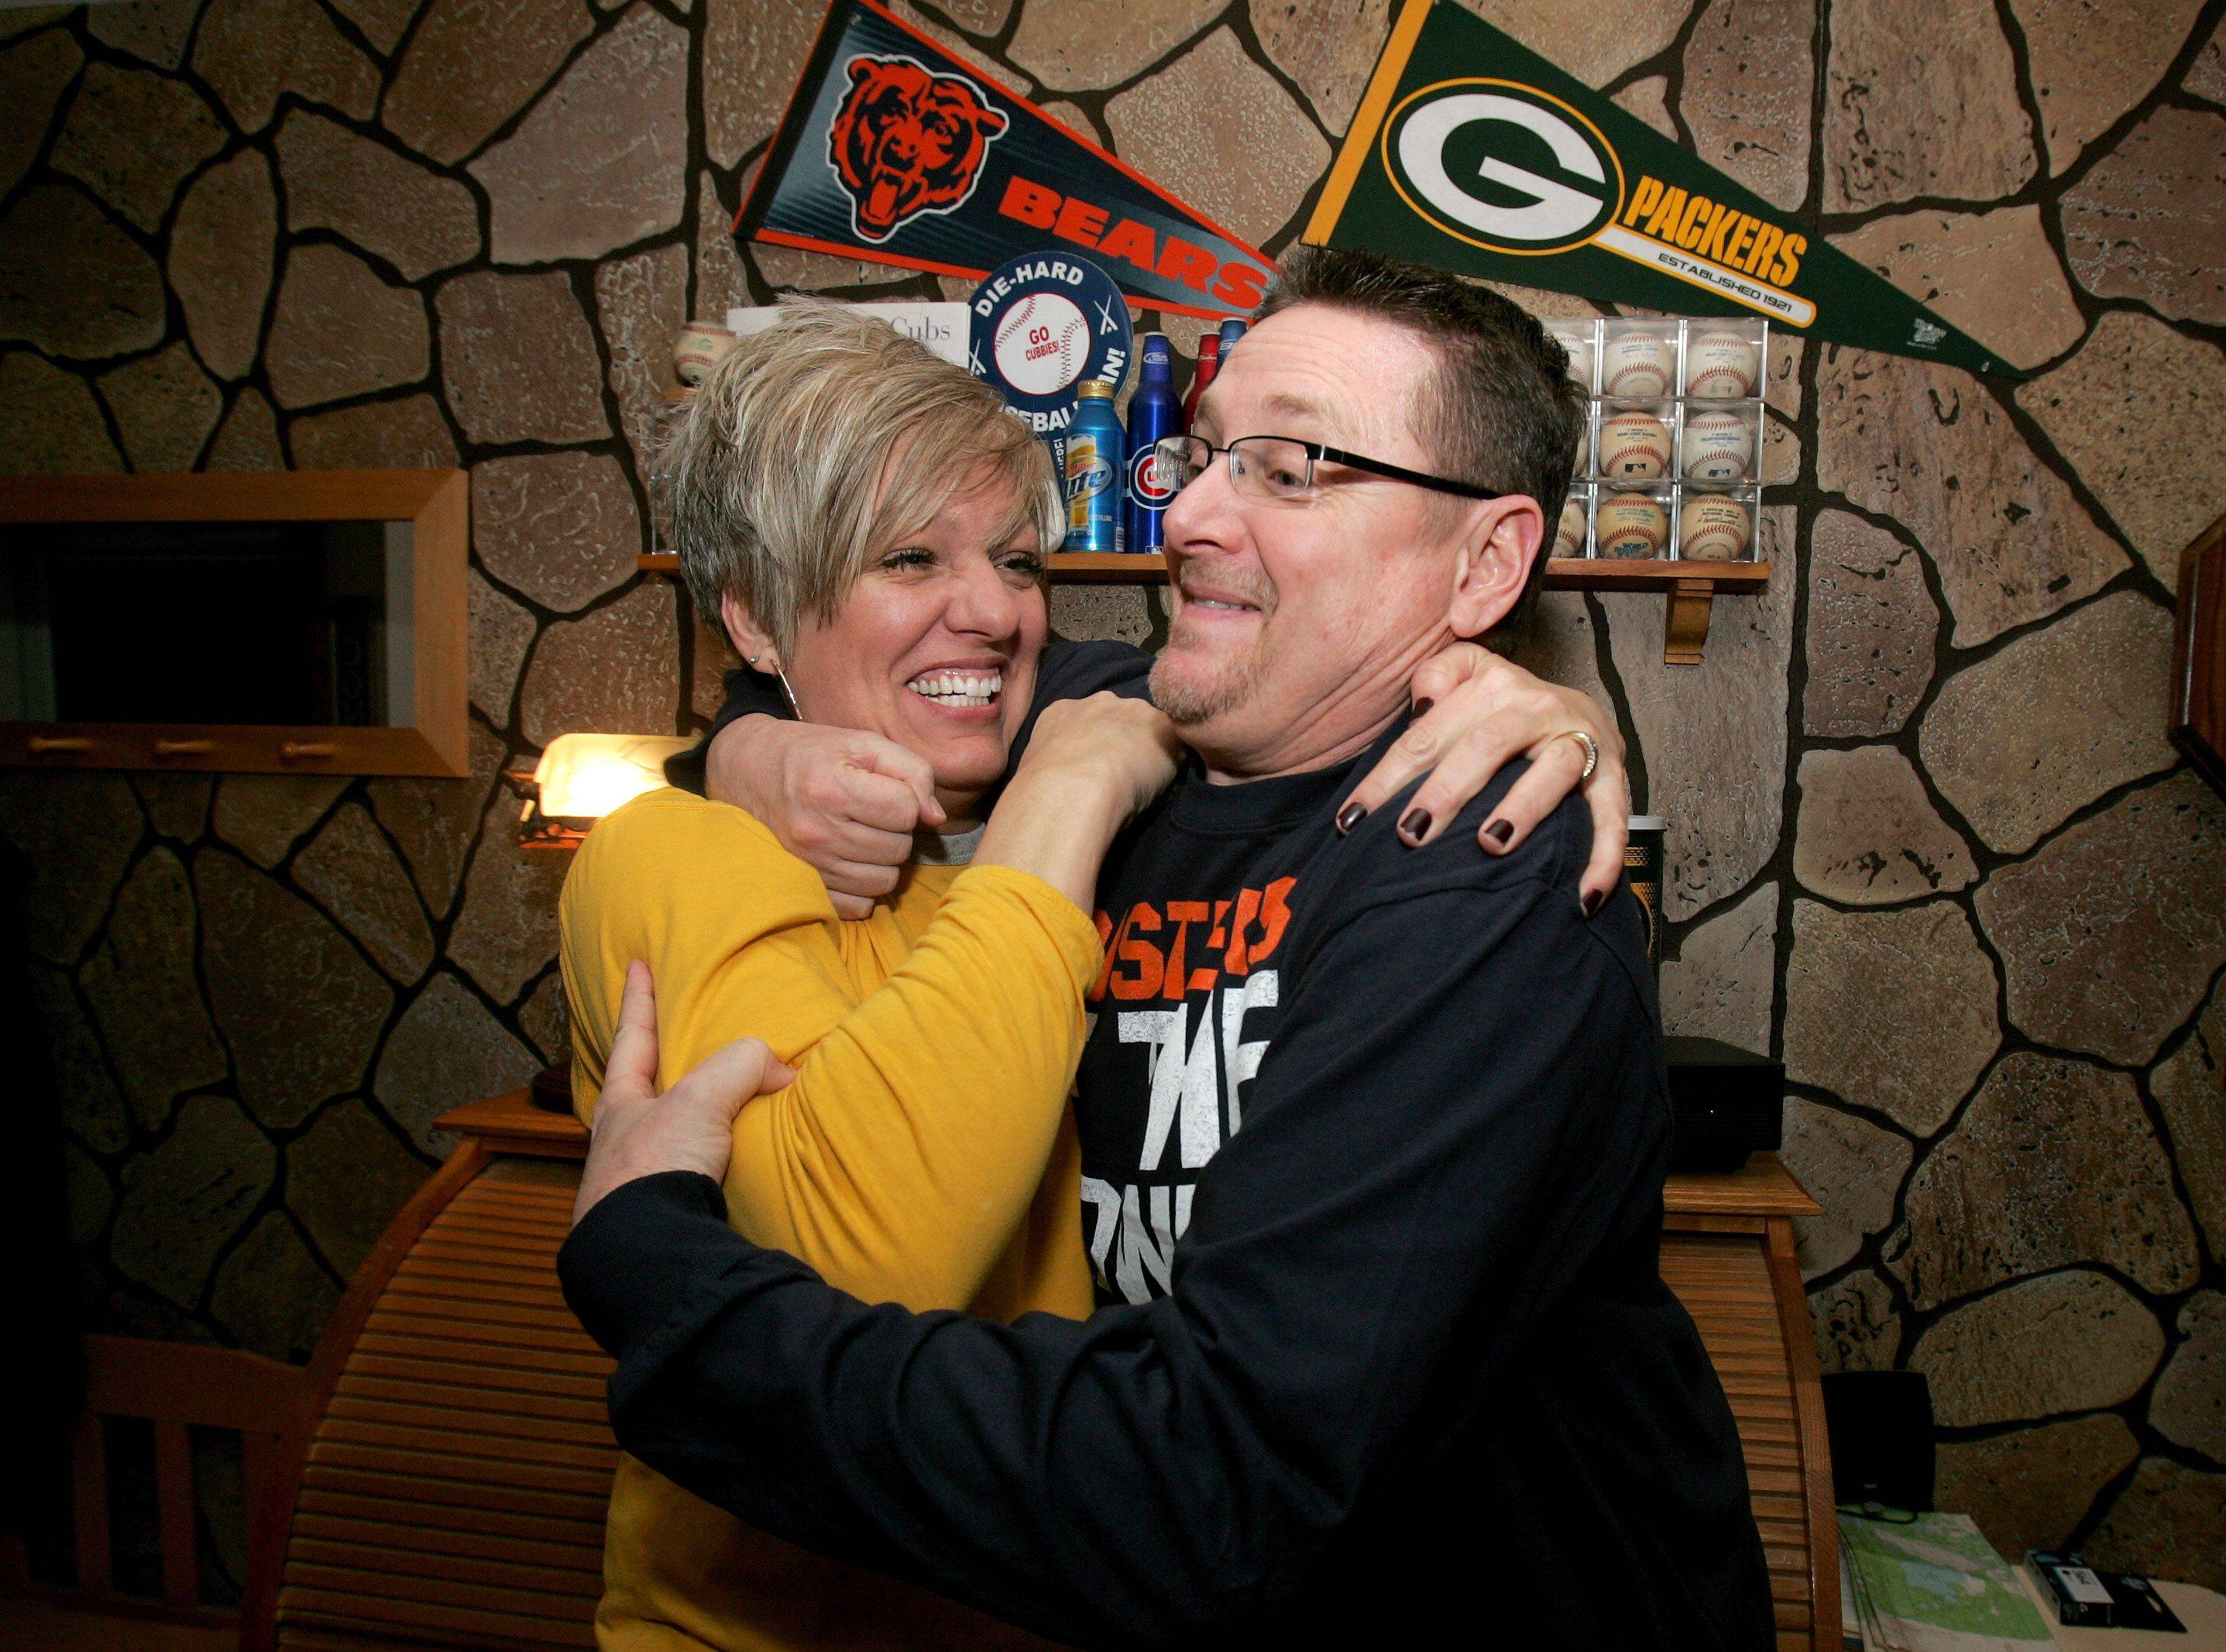 Bev Horne/bhorne@dailyherald.comBob and Lisa Bosma of Lombard will be rivals this weekend for the Chicago Bears vs. Green Bay Packers playoff game.